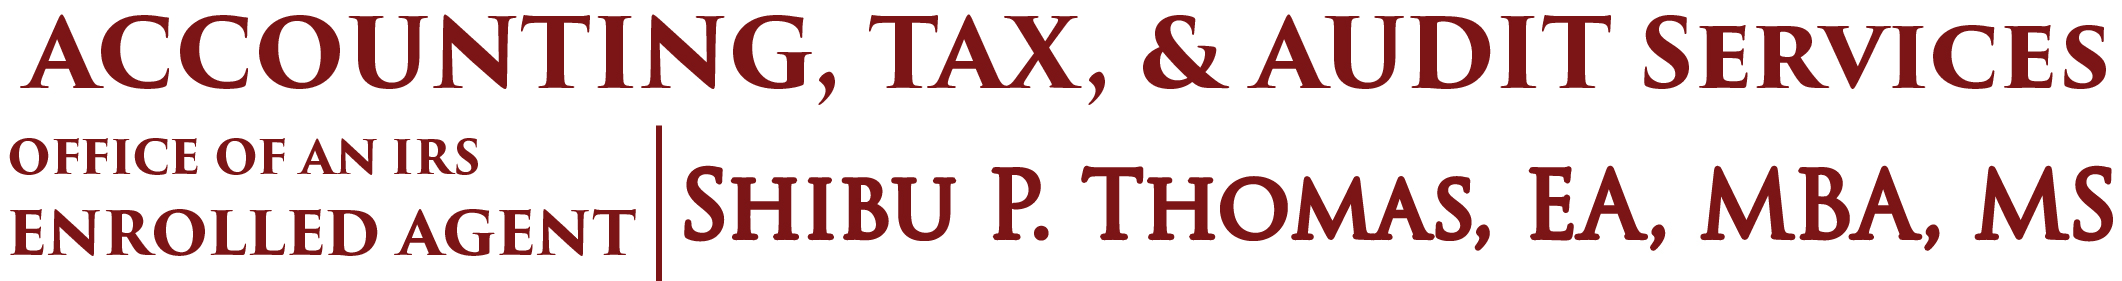 Staten Island, NY Accounting Firm | Tax Planning in Staten Island, NY Page | Accounting, Tax, & Audit Services Shibu P. Thomas, EA, MBA, MS